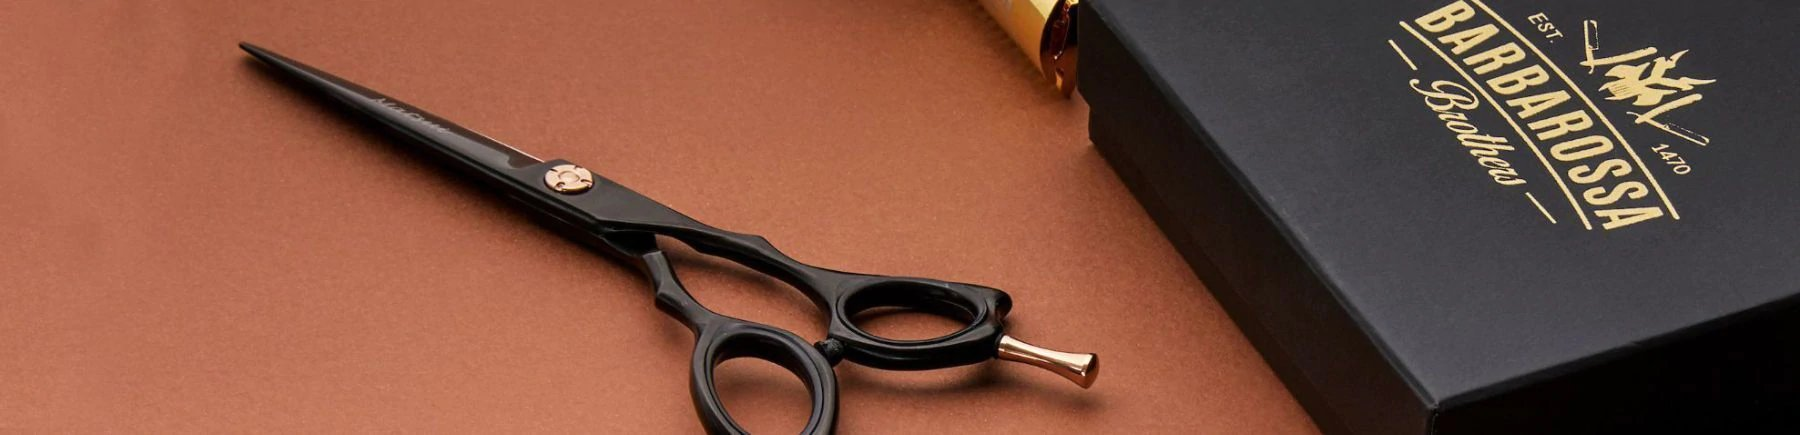 Best Selling Barber Scissors.